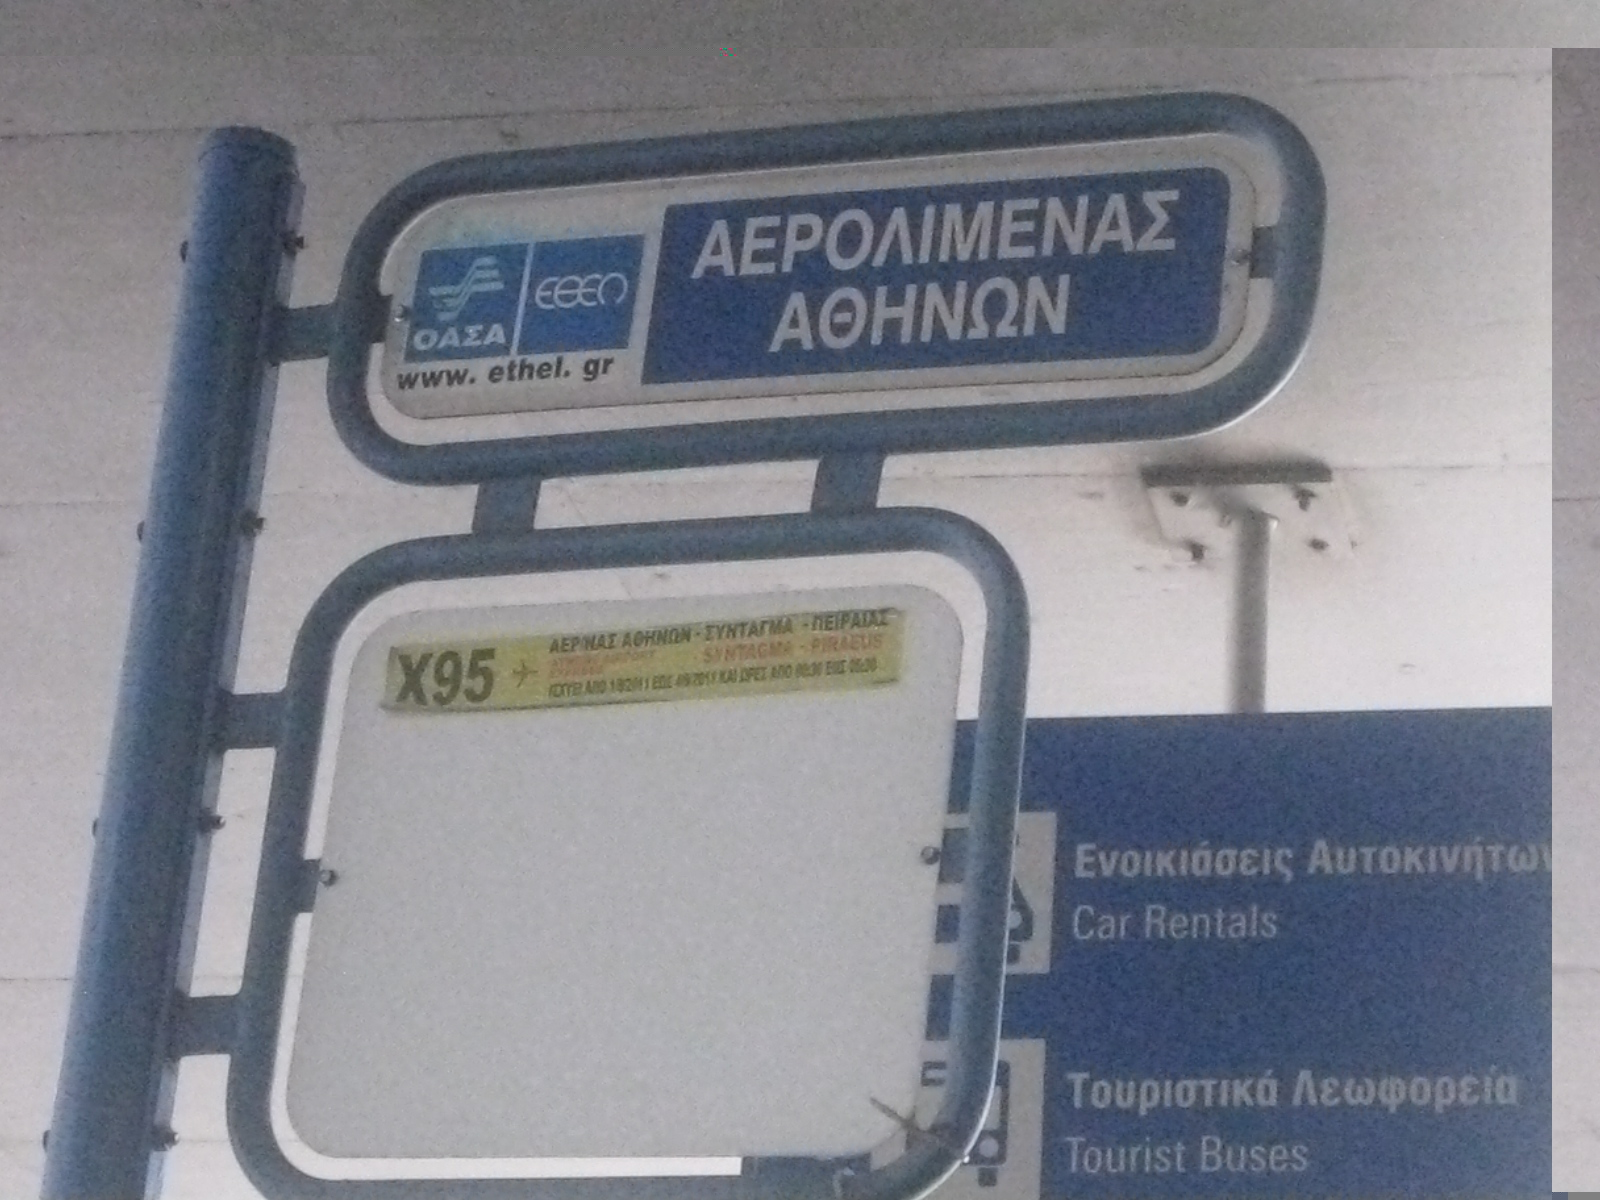 Greece | Discounts and Transportation